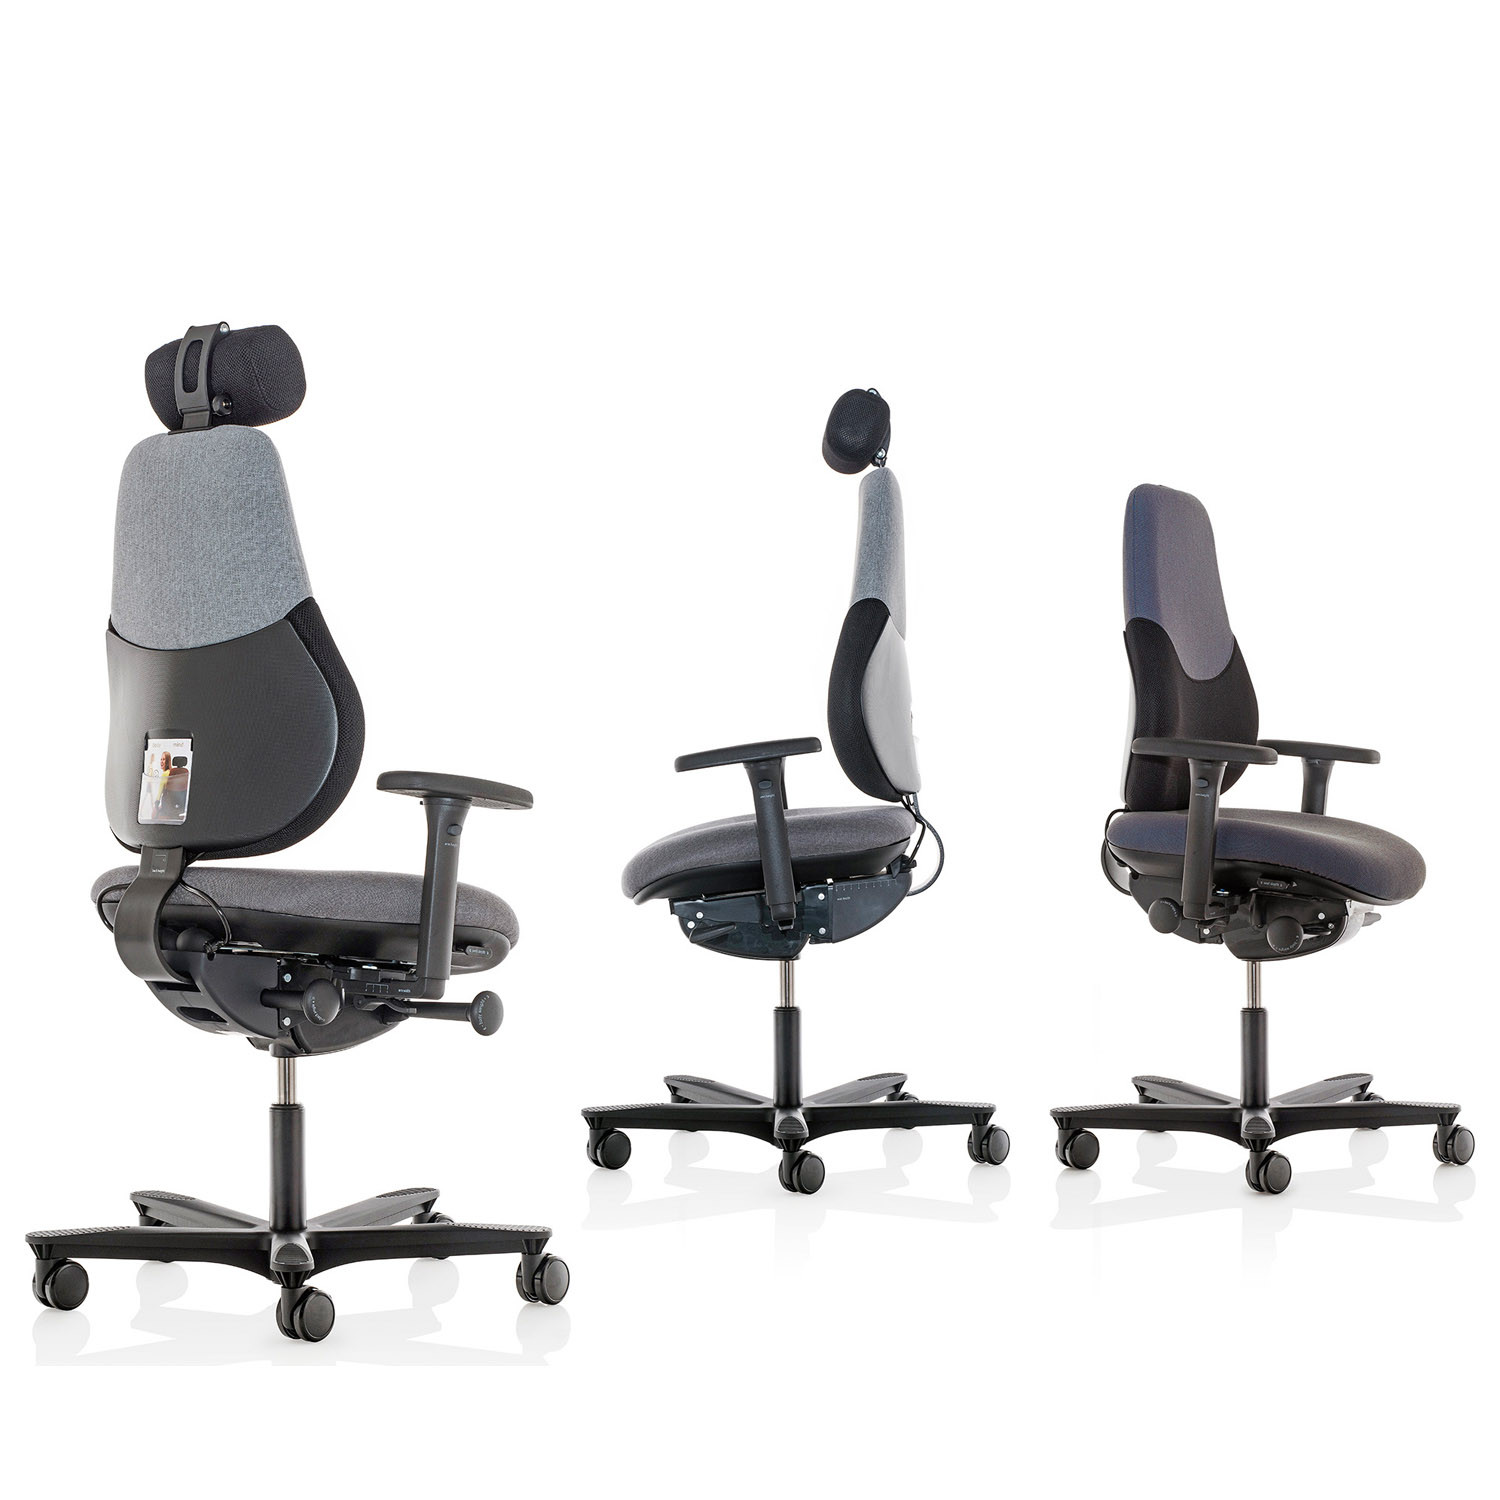 Flo Ergonomic Office Chairs FLO-HBAH & HBA